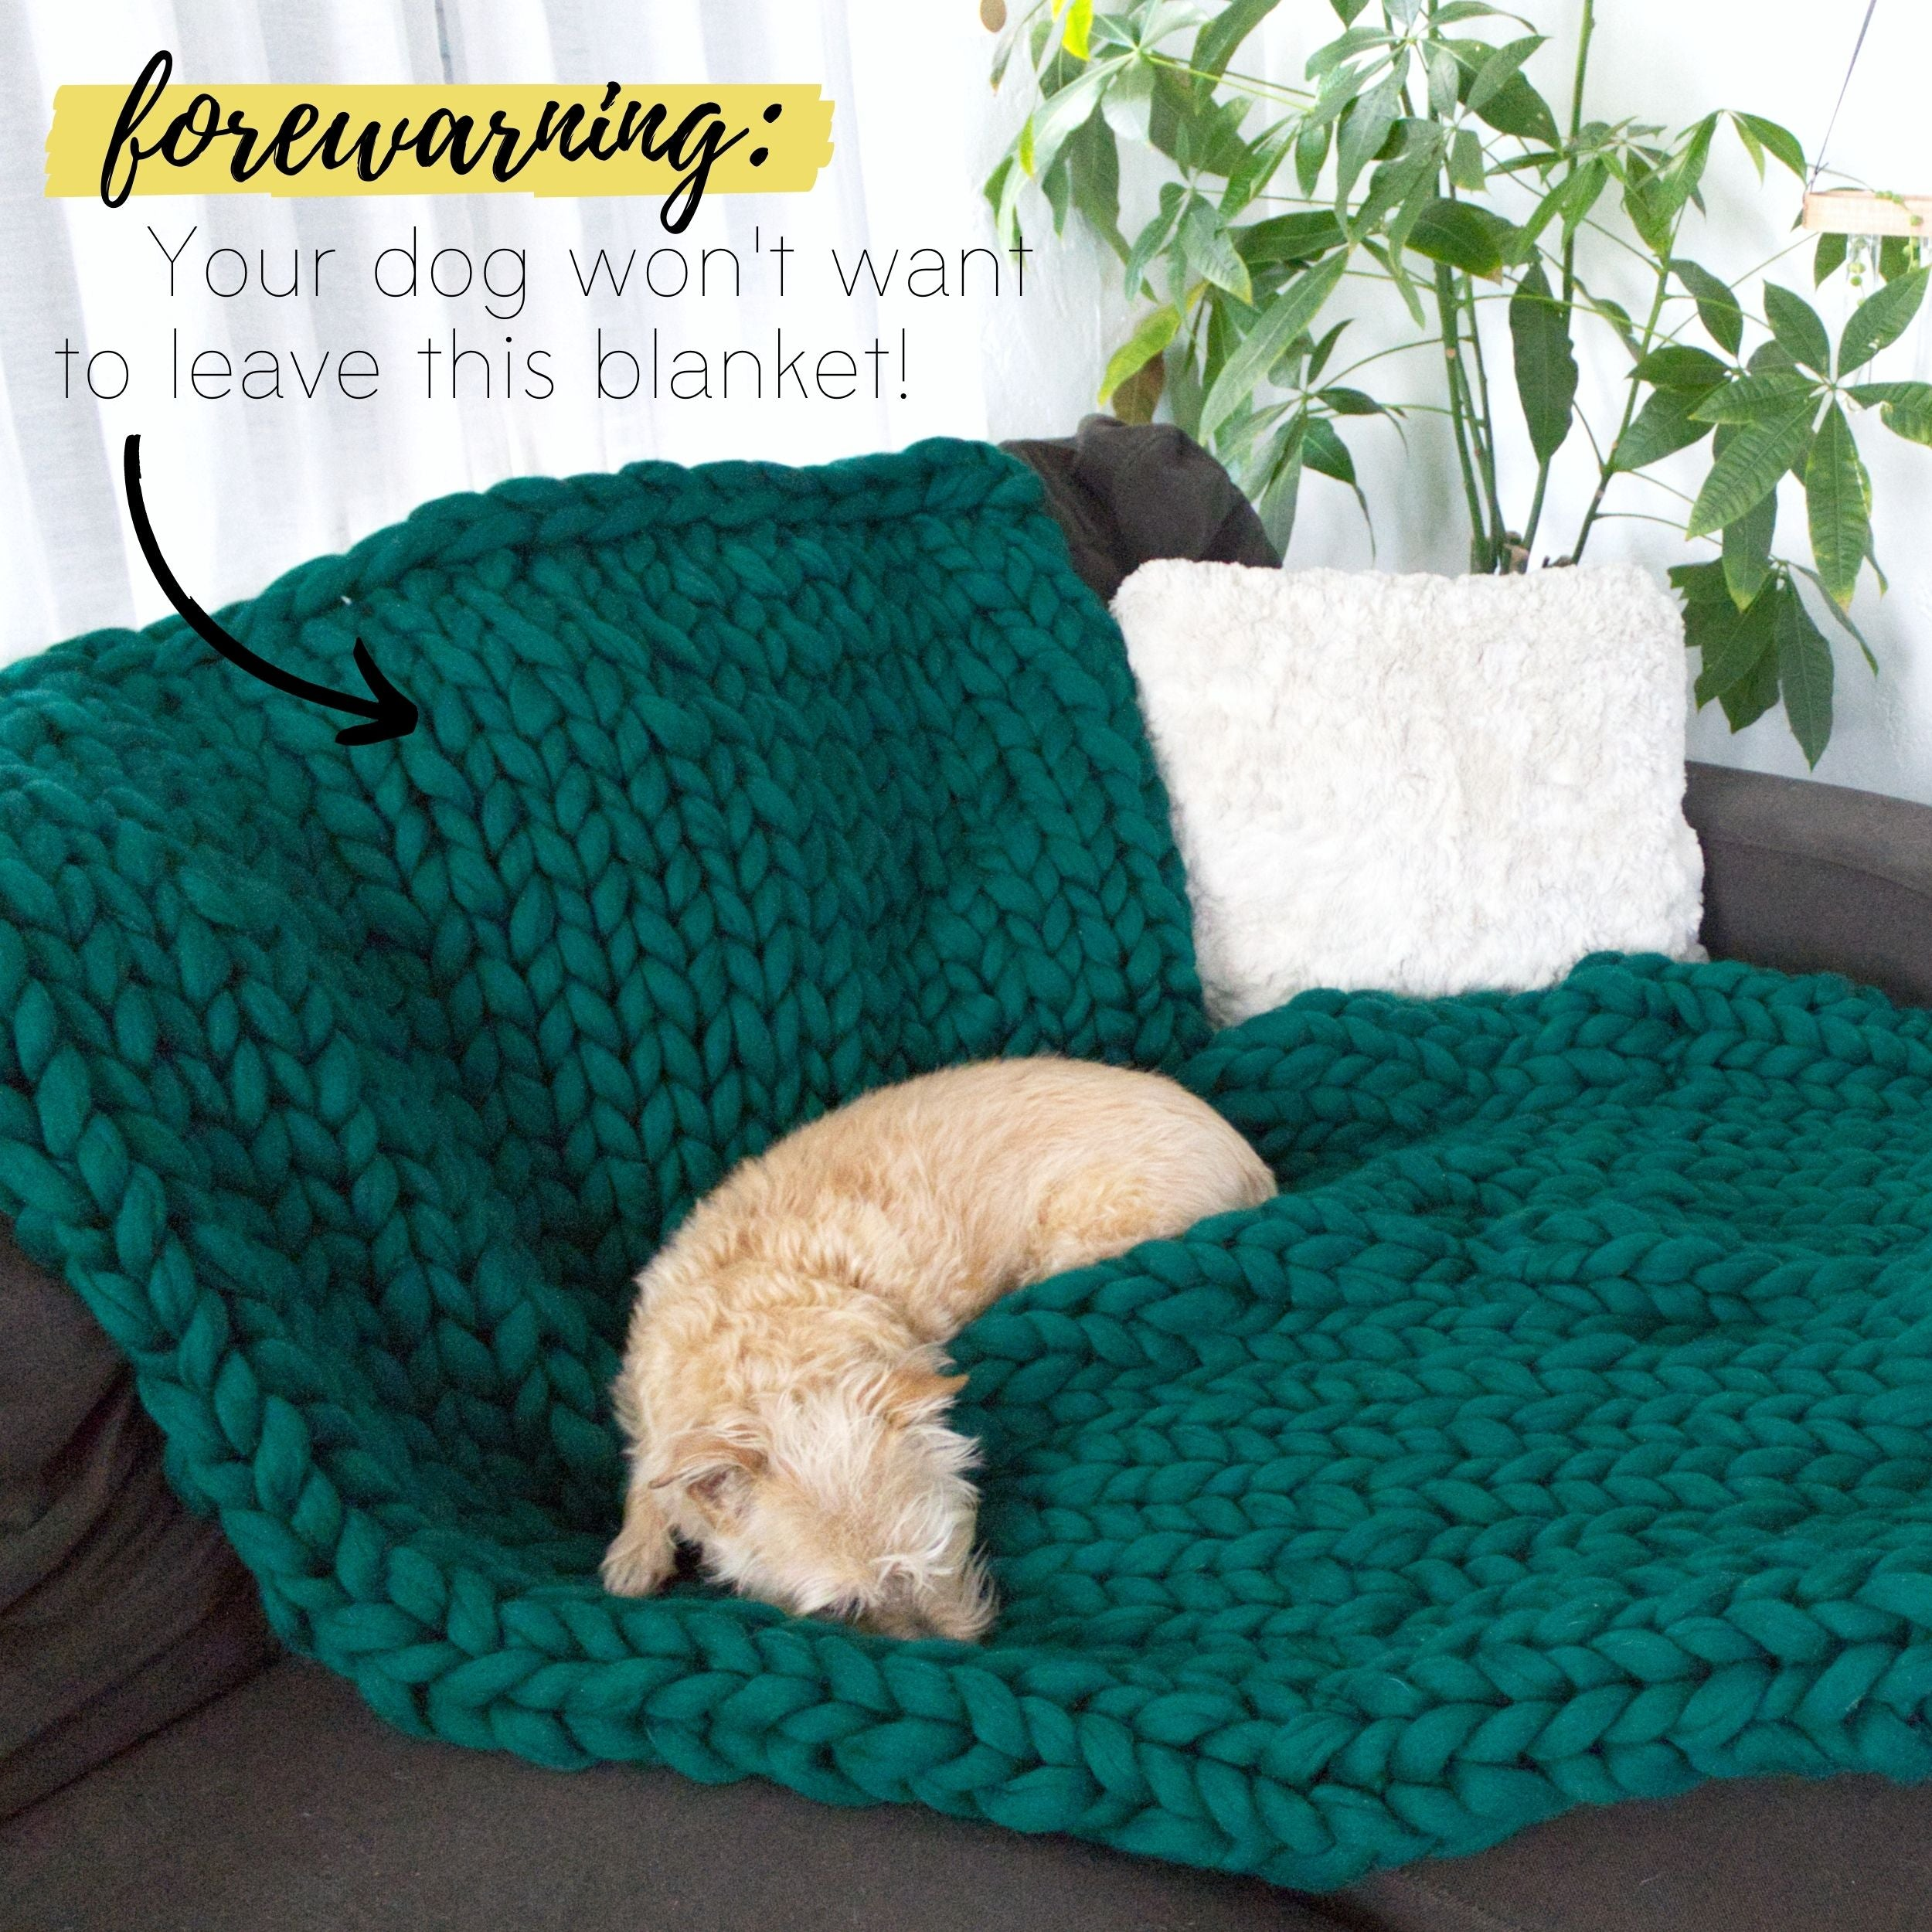 Your dog won't want to leave this DIY chunky knit blanket!